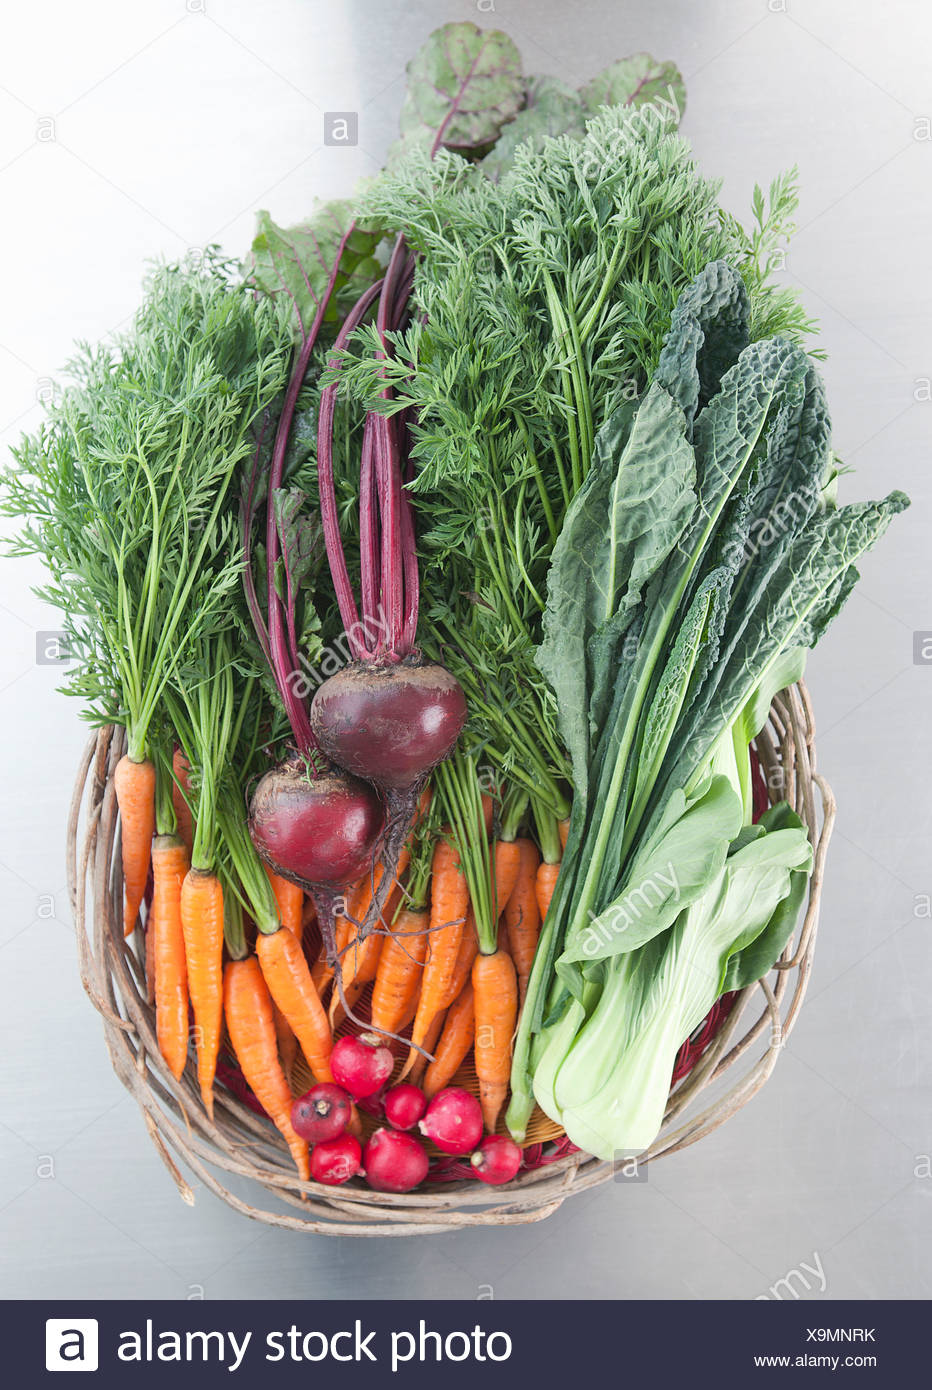 Basket of fresh vegetables - Stock Image